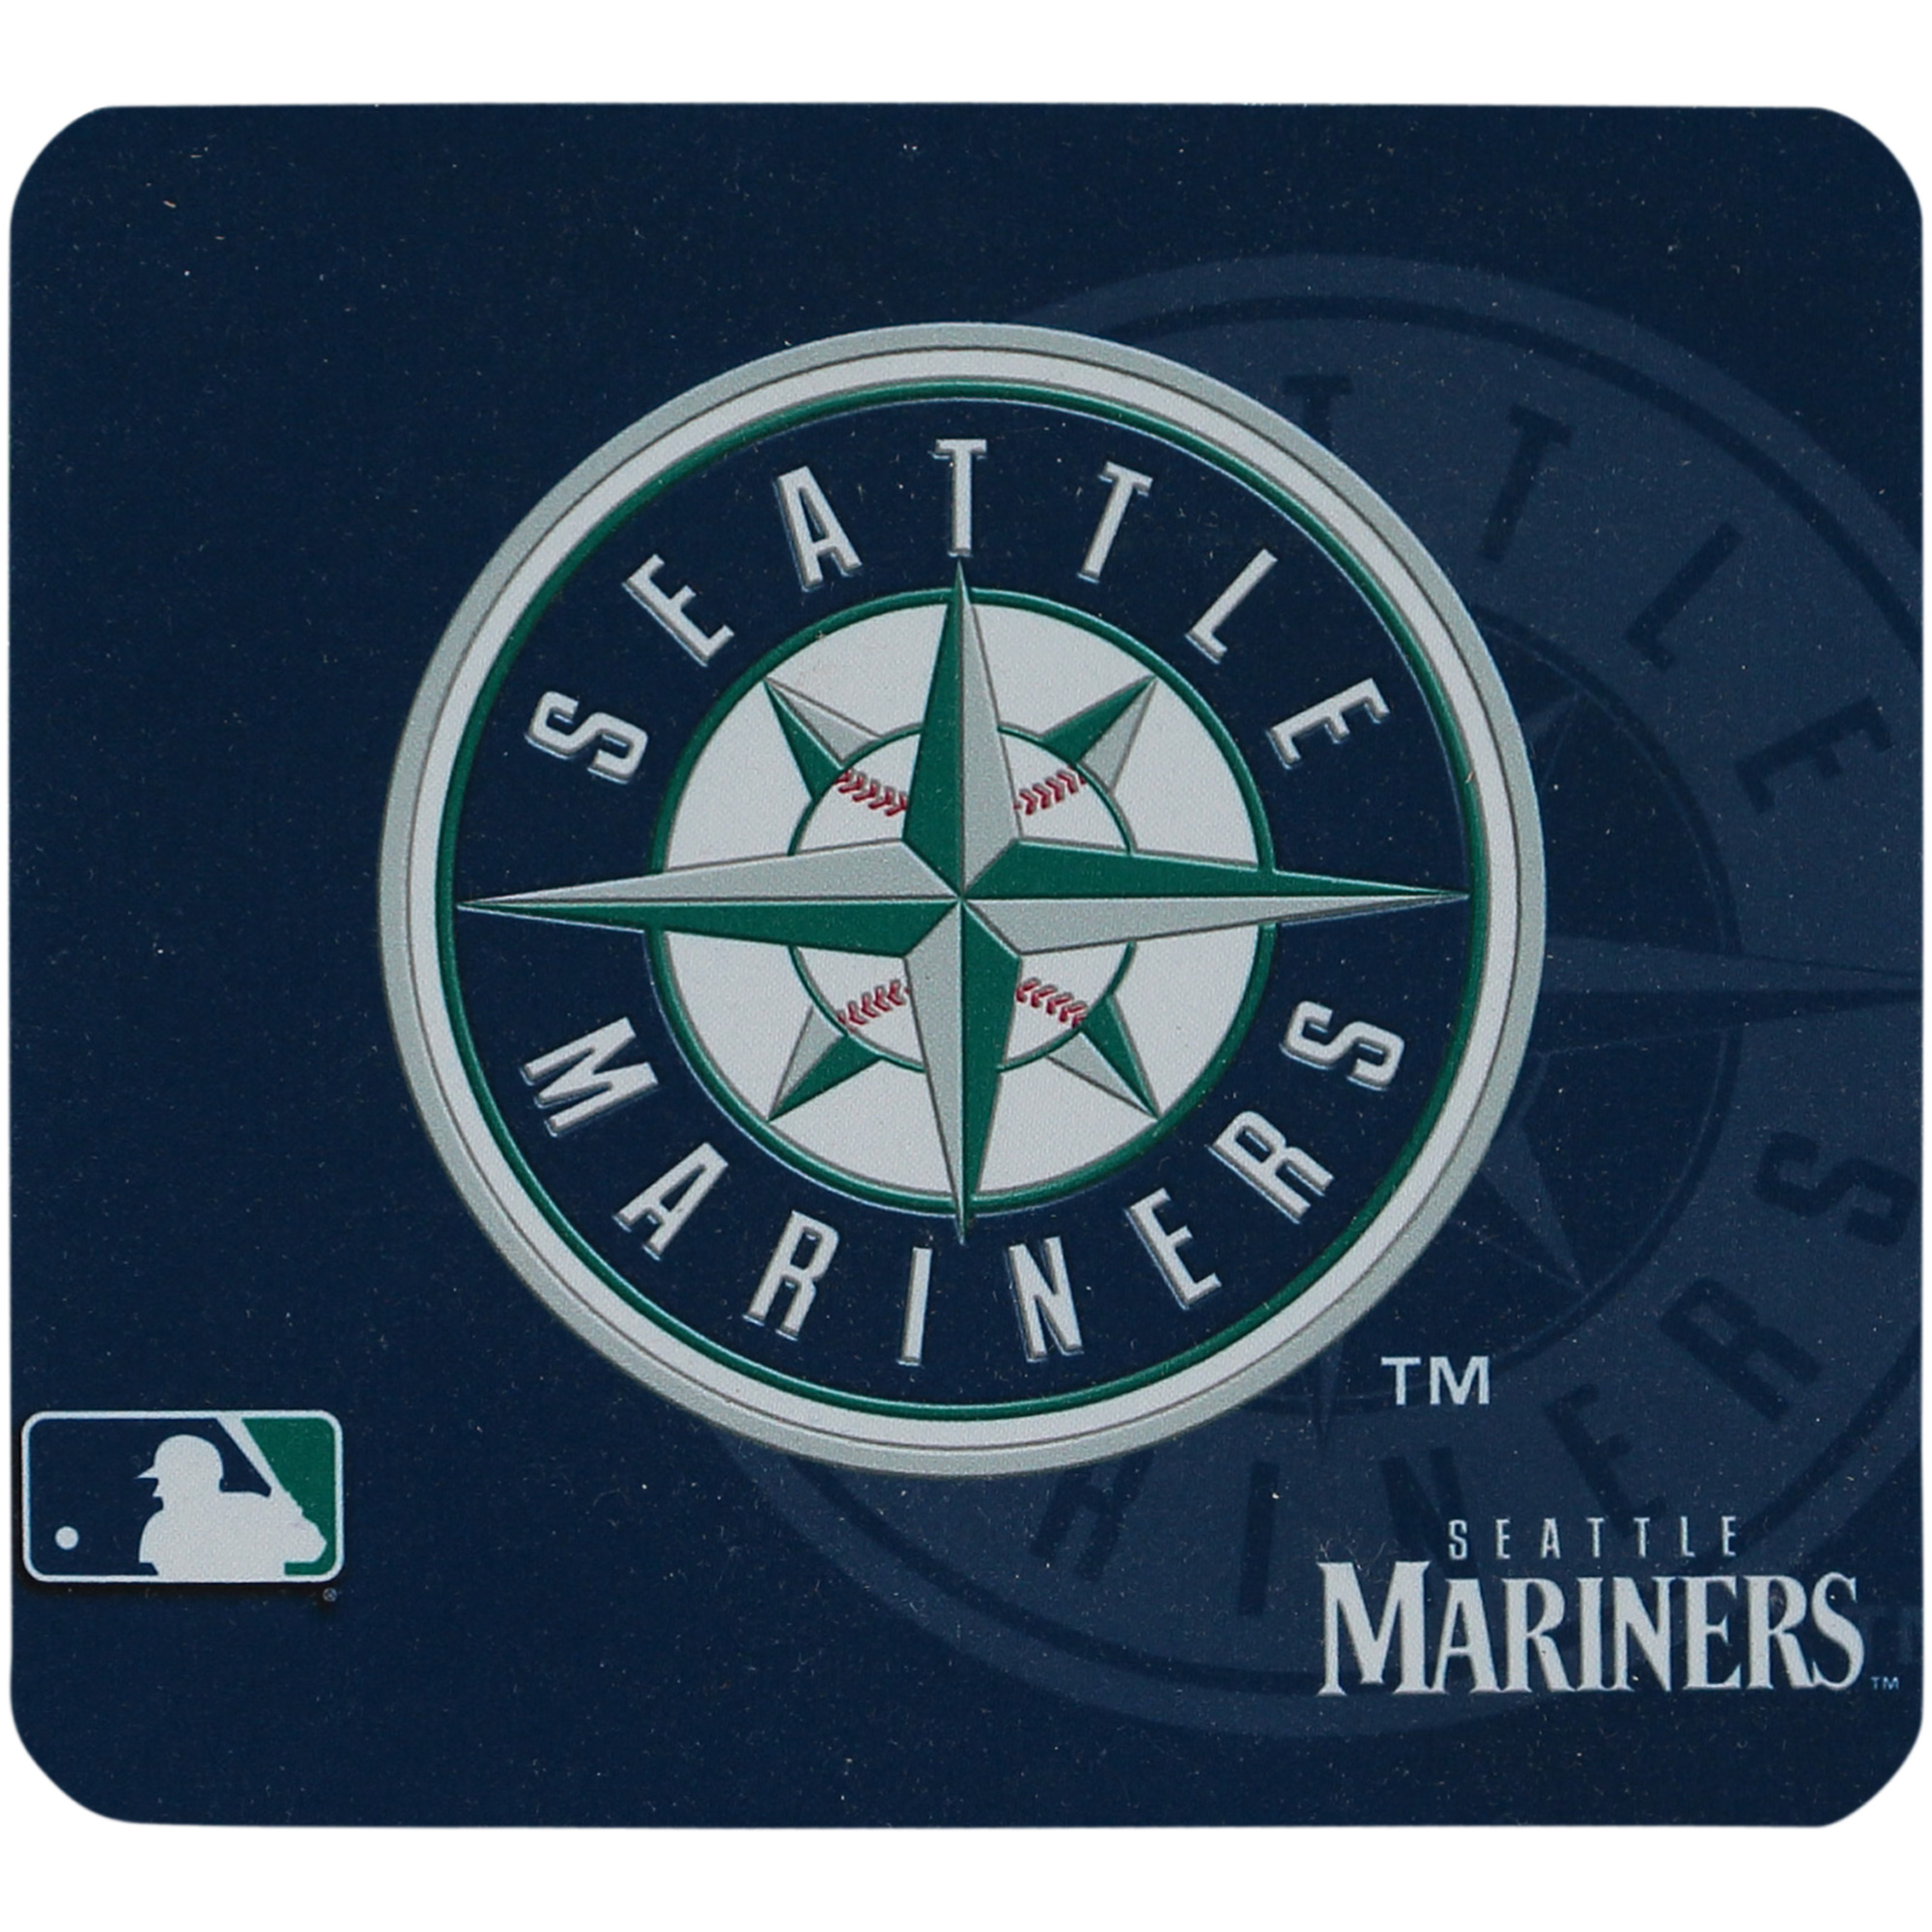 Seattle Mariners 3D Mouse Pad - No Size